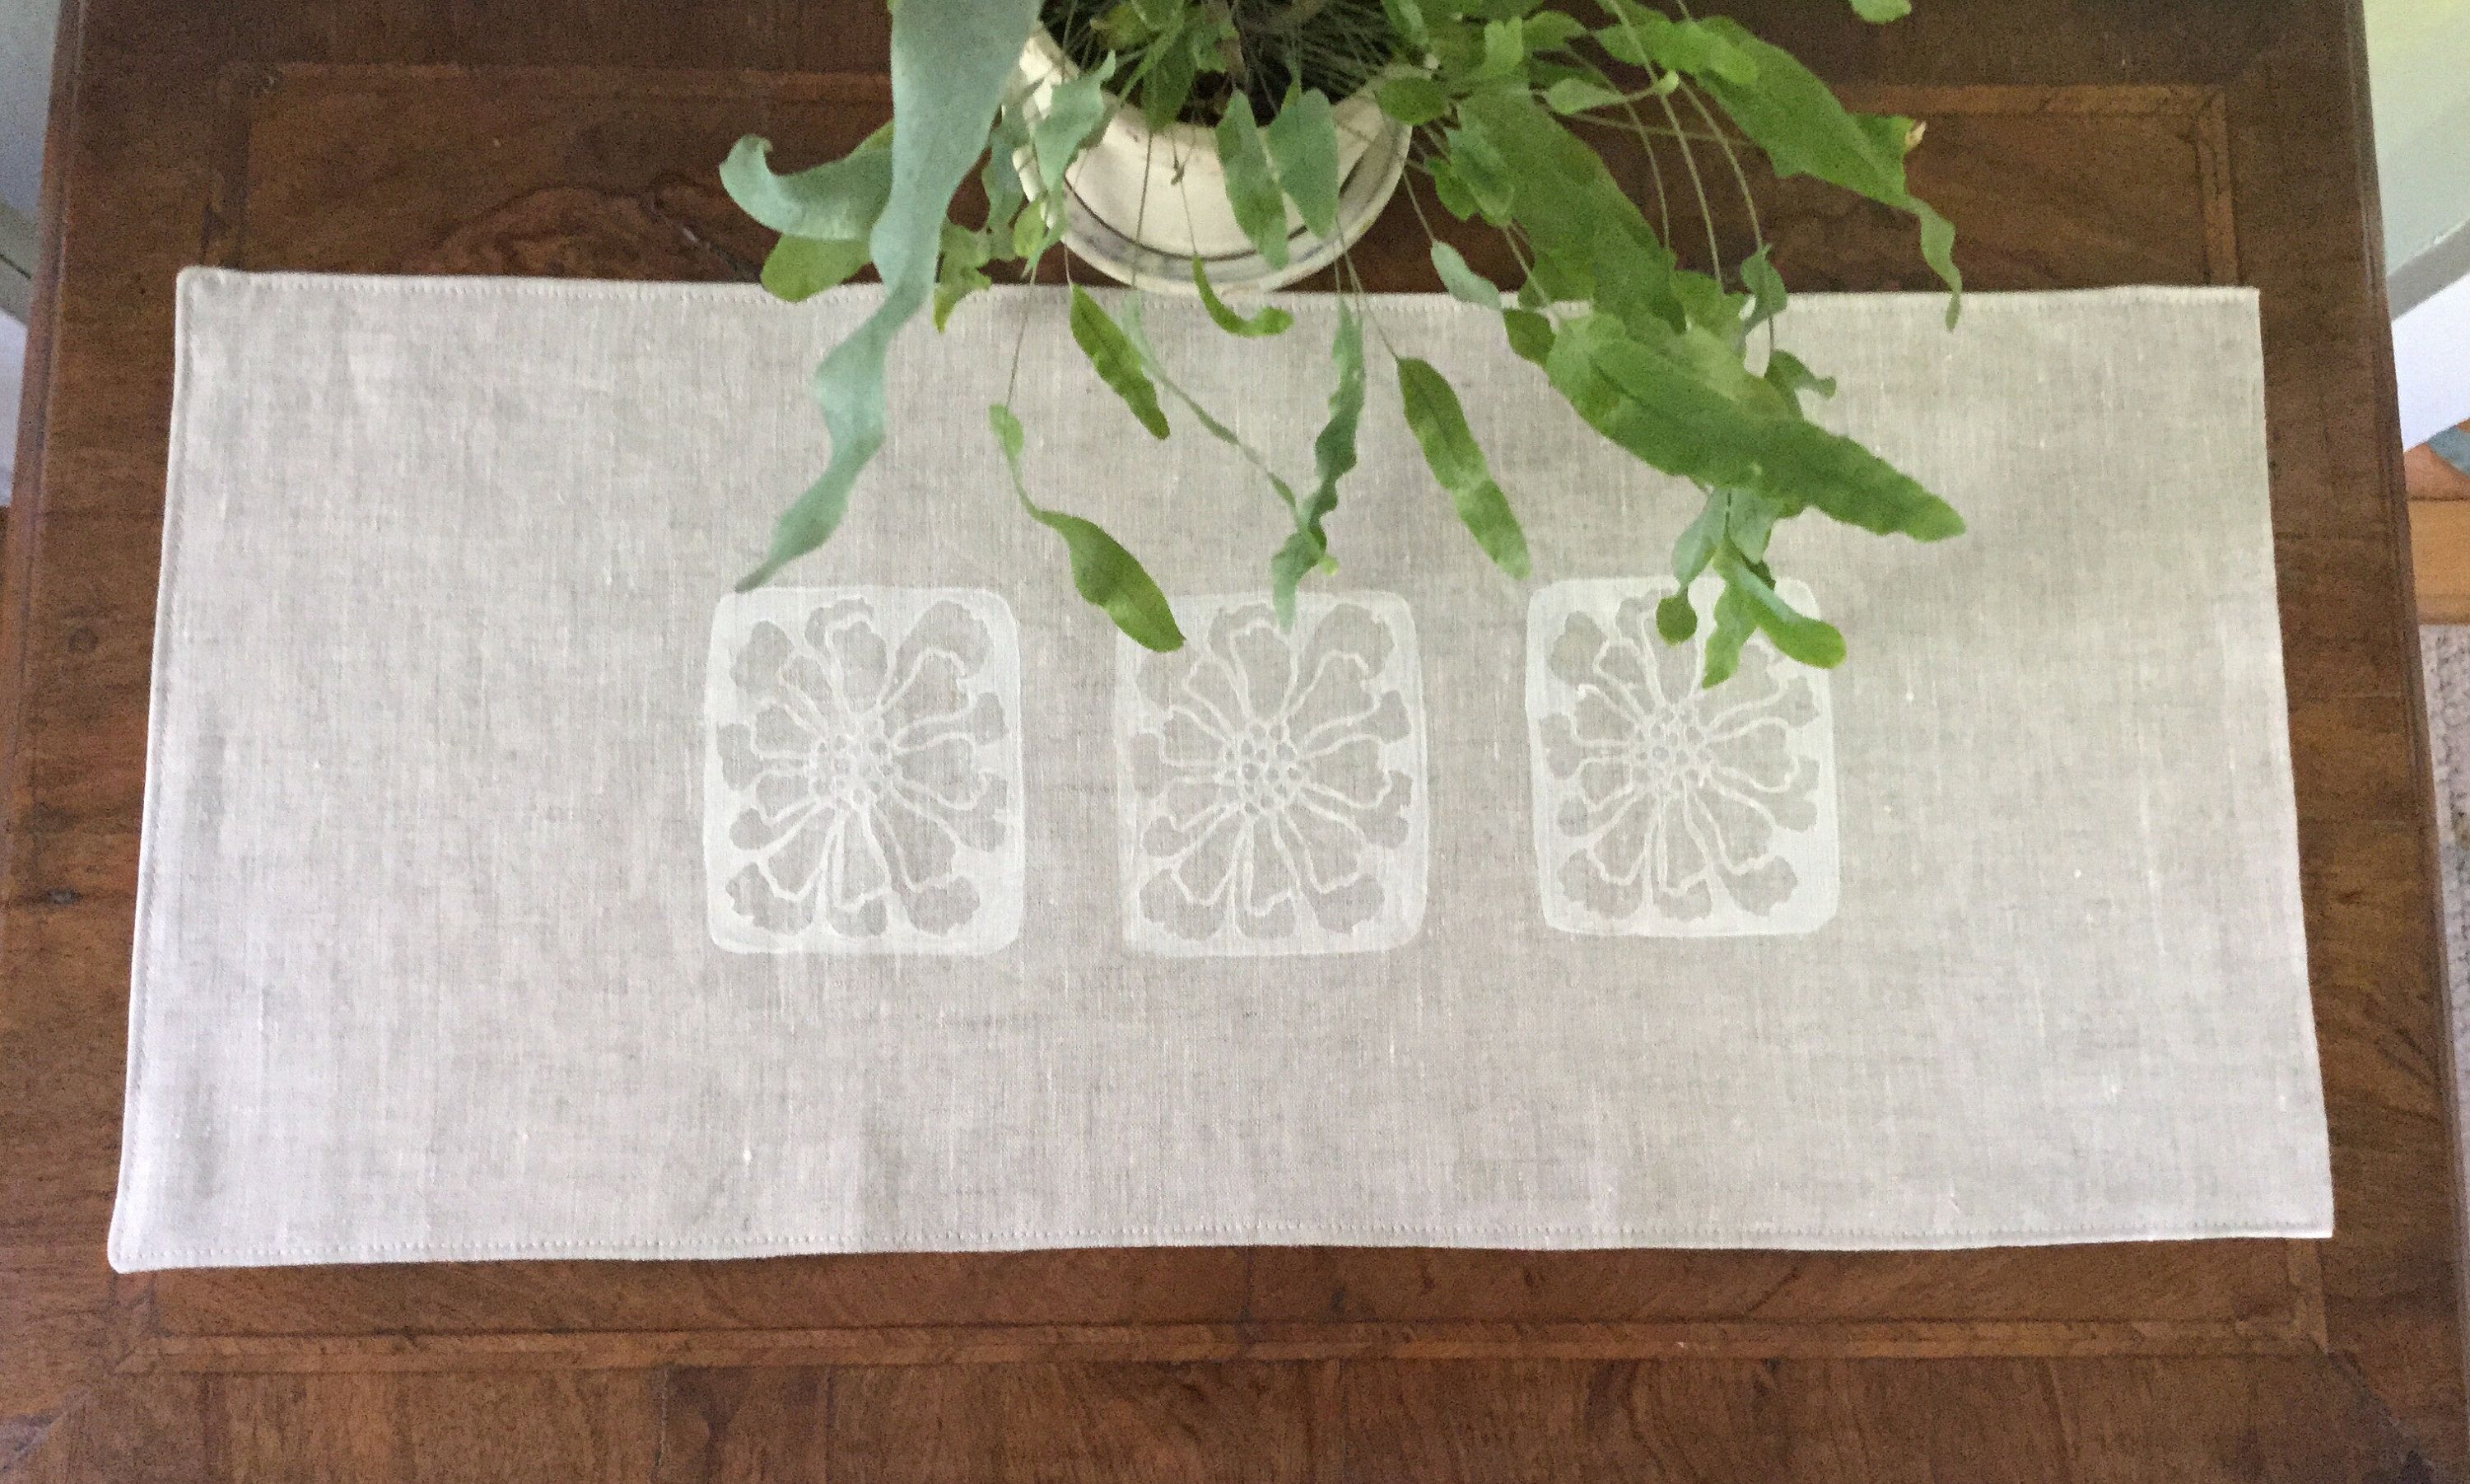 Block Printed Linen Table Runner Oatmeal Colored Cloth With Handprinted White Design For Or Dresser Unique Gift Idea By Calendulahandmade On